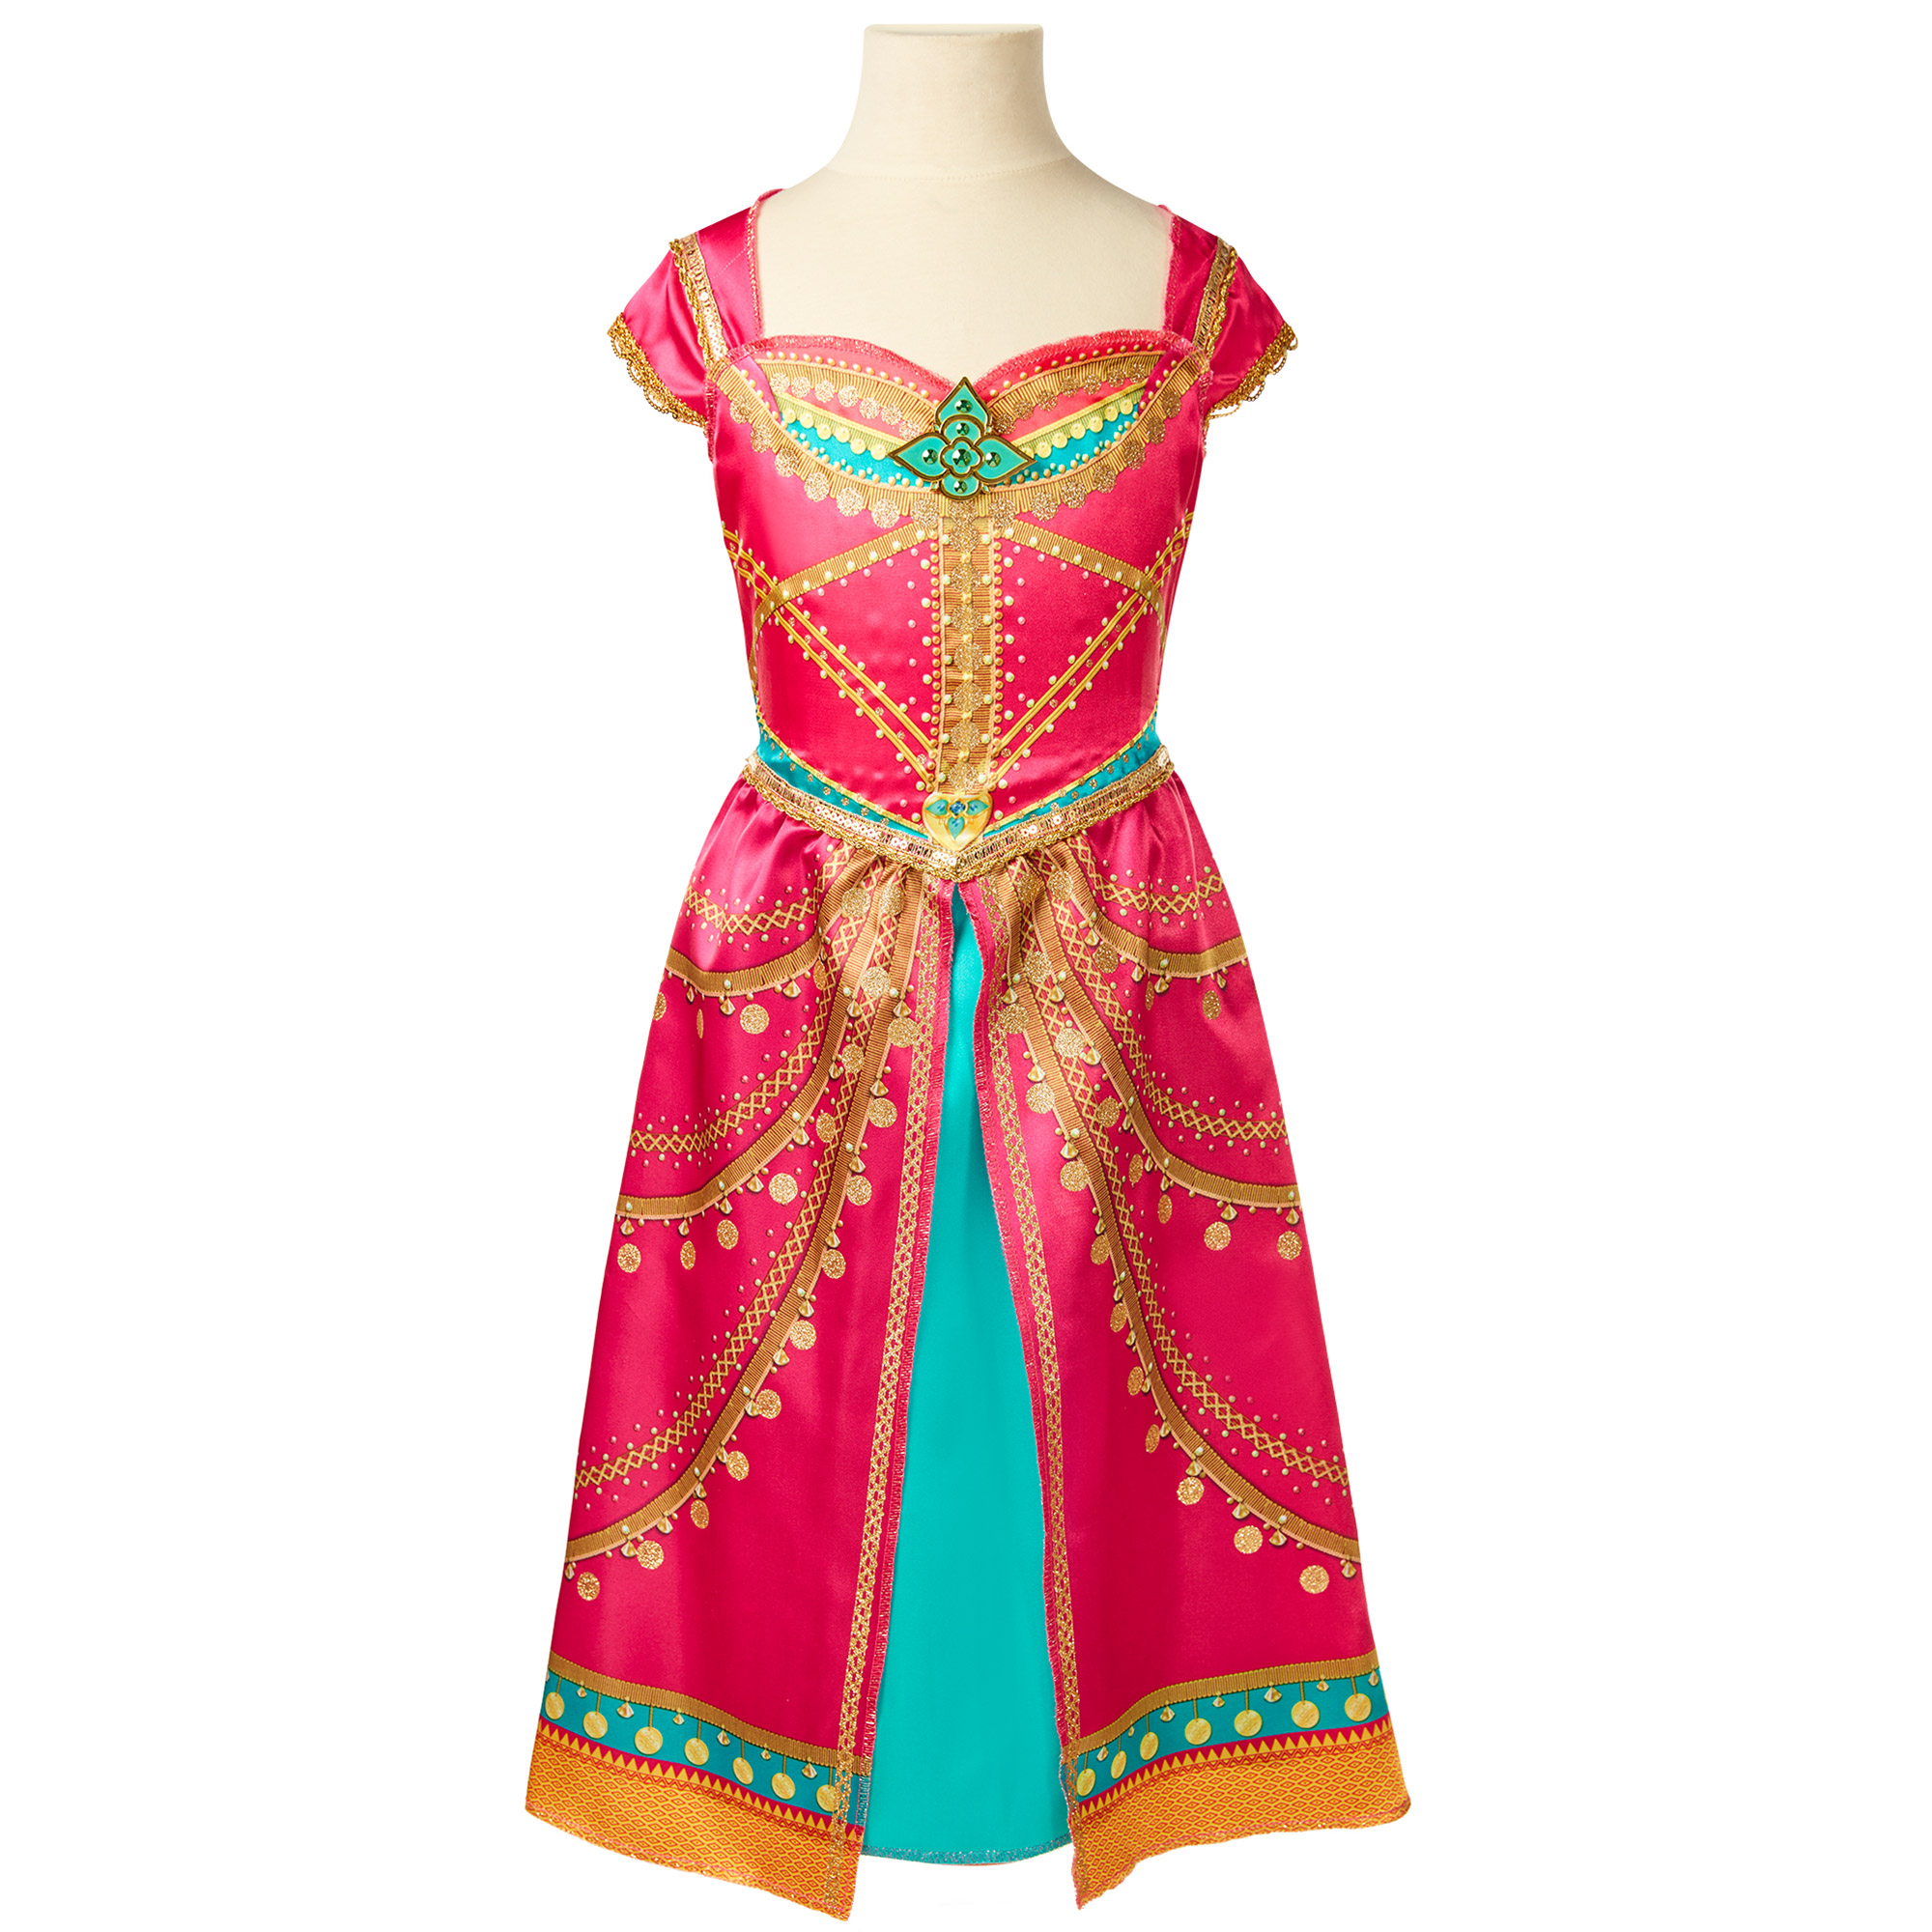 Disney Aladdin Jasmine Pink Dress